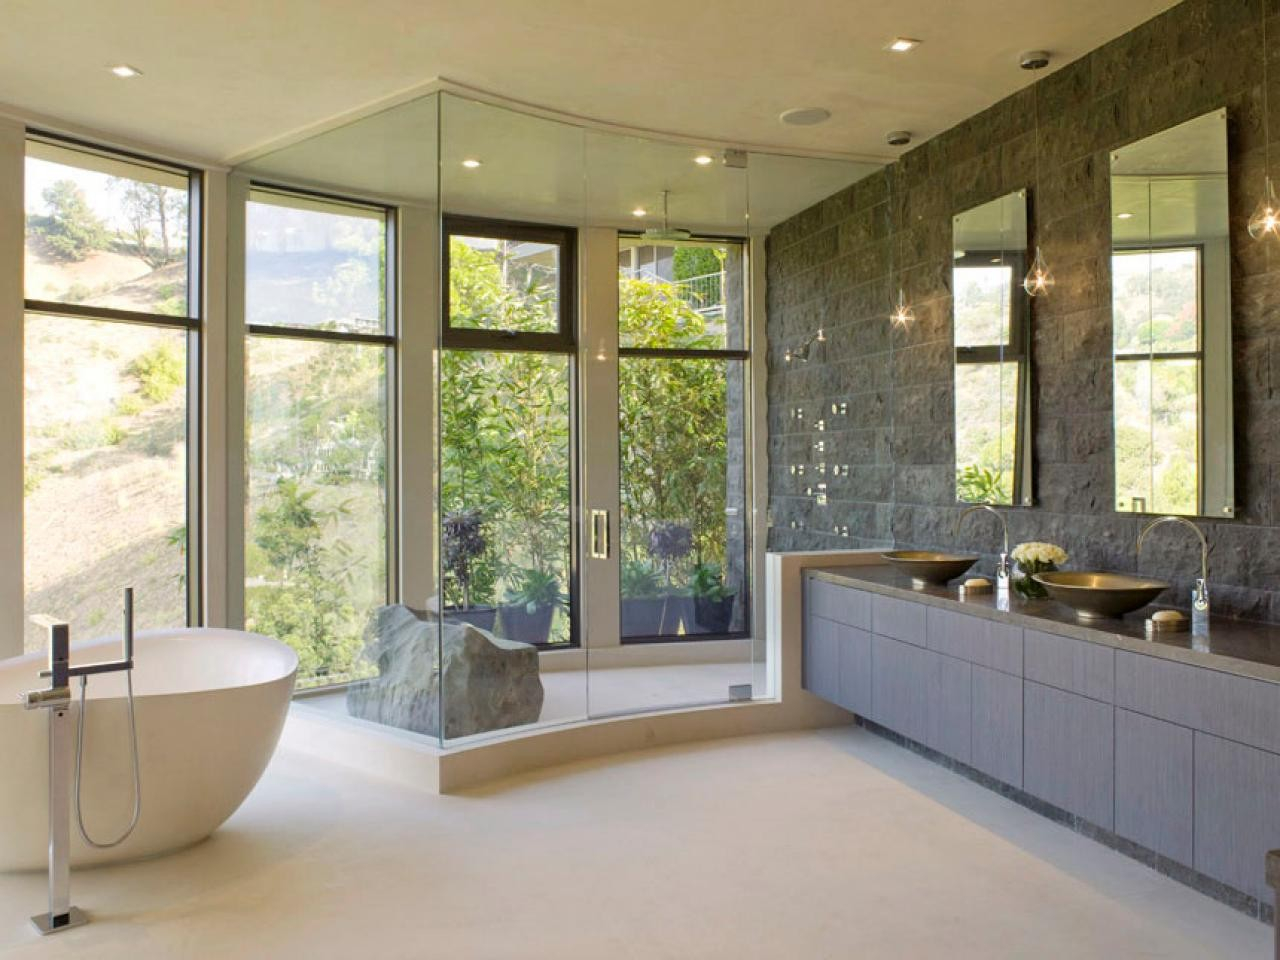 Fancy Inspirational Best Master Bathroom Layouts • The Ignite Show regarding Master Bathroom Layouts